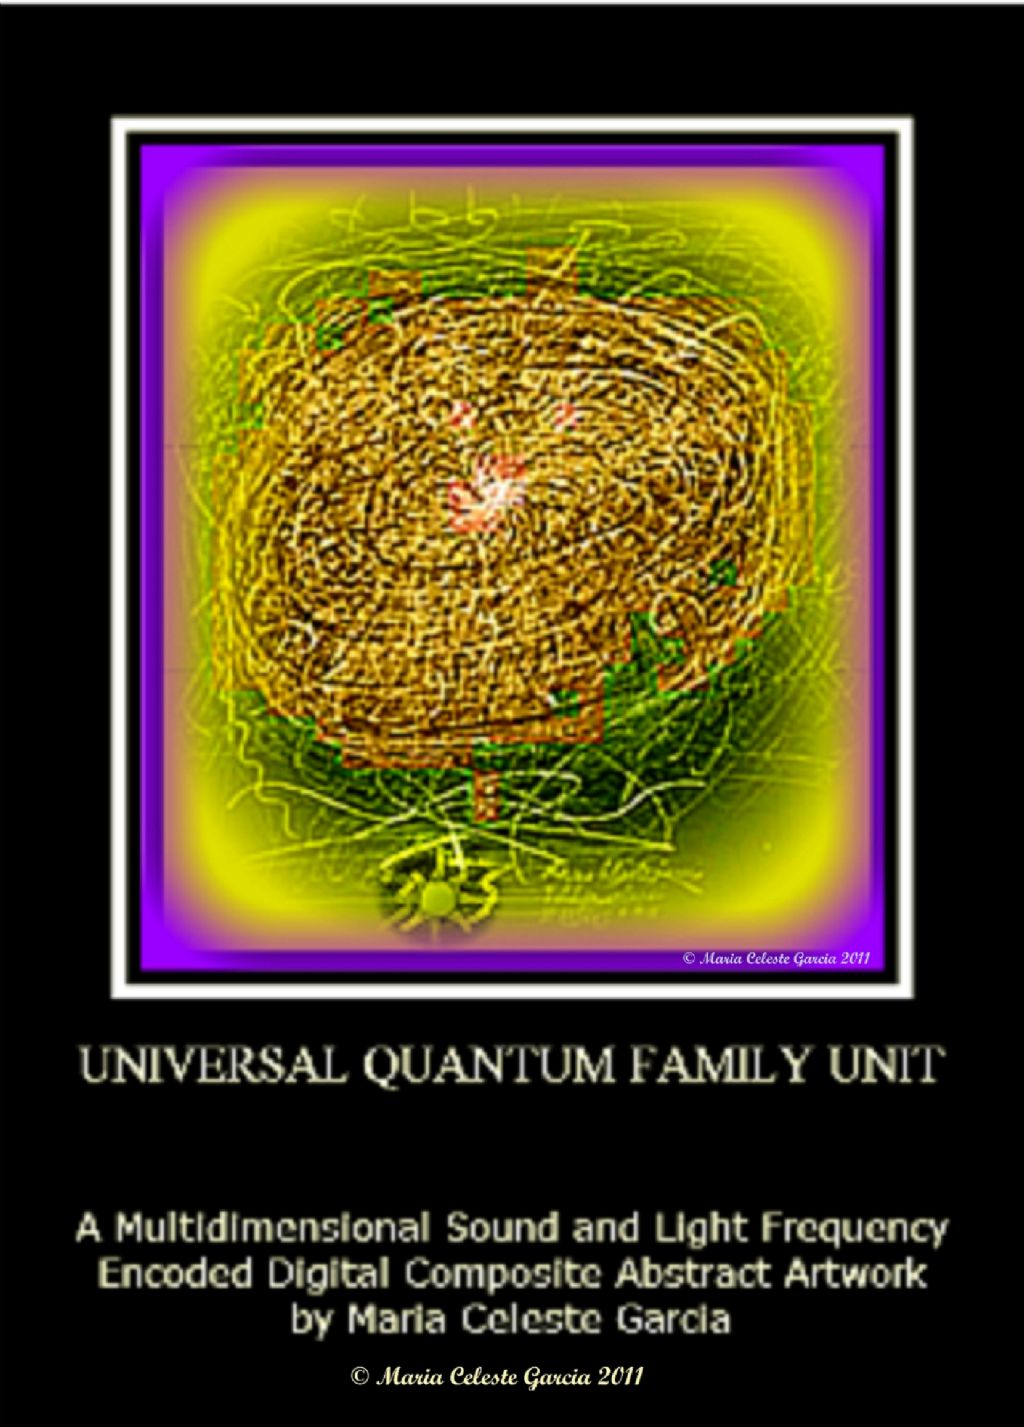 Universal Quantum Family Unit